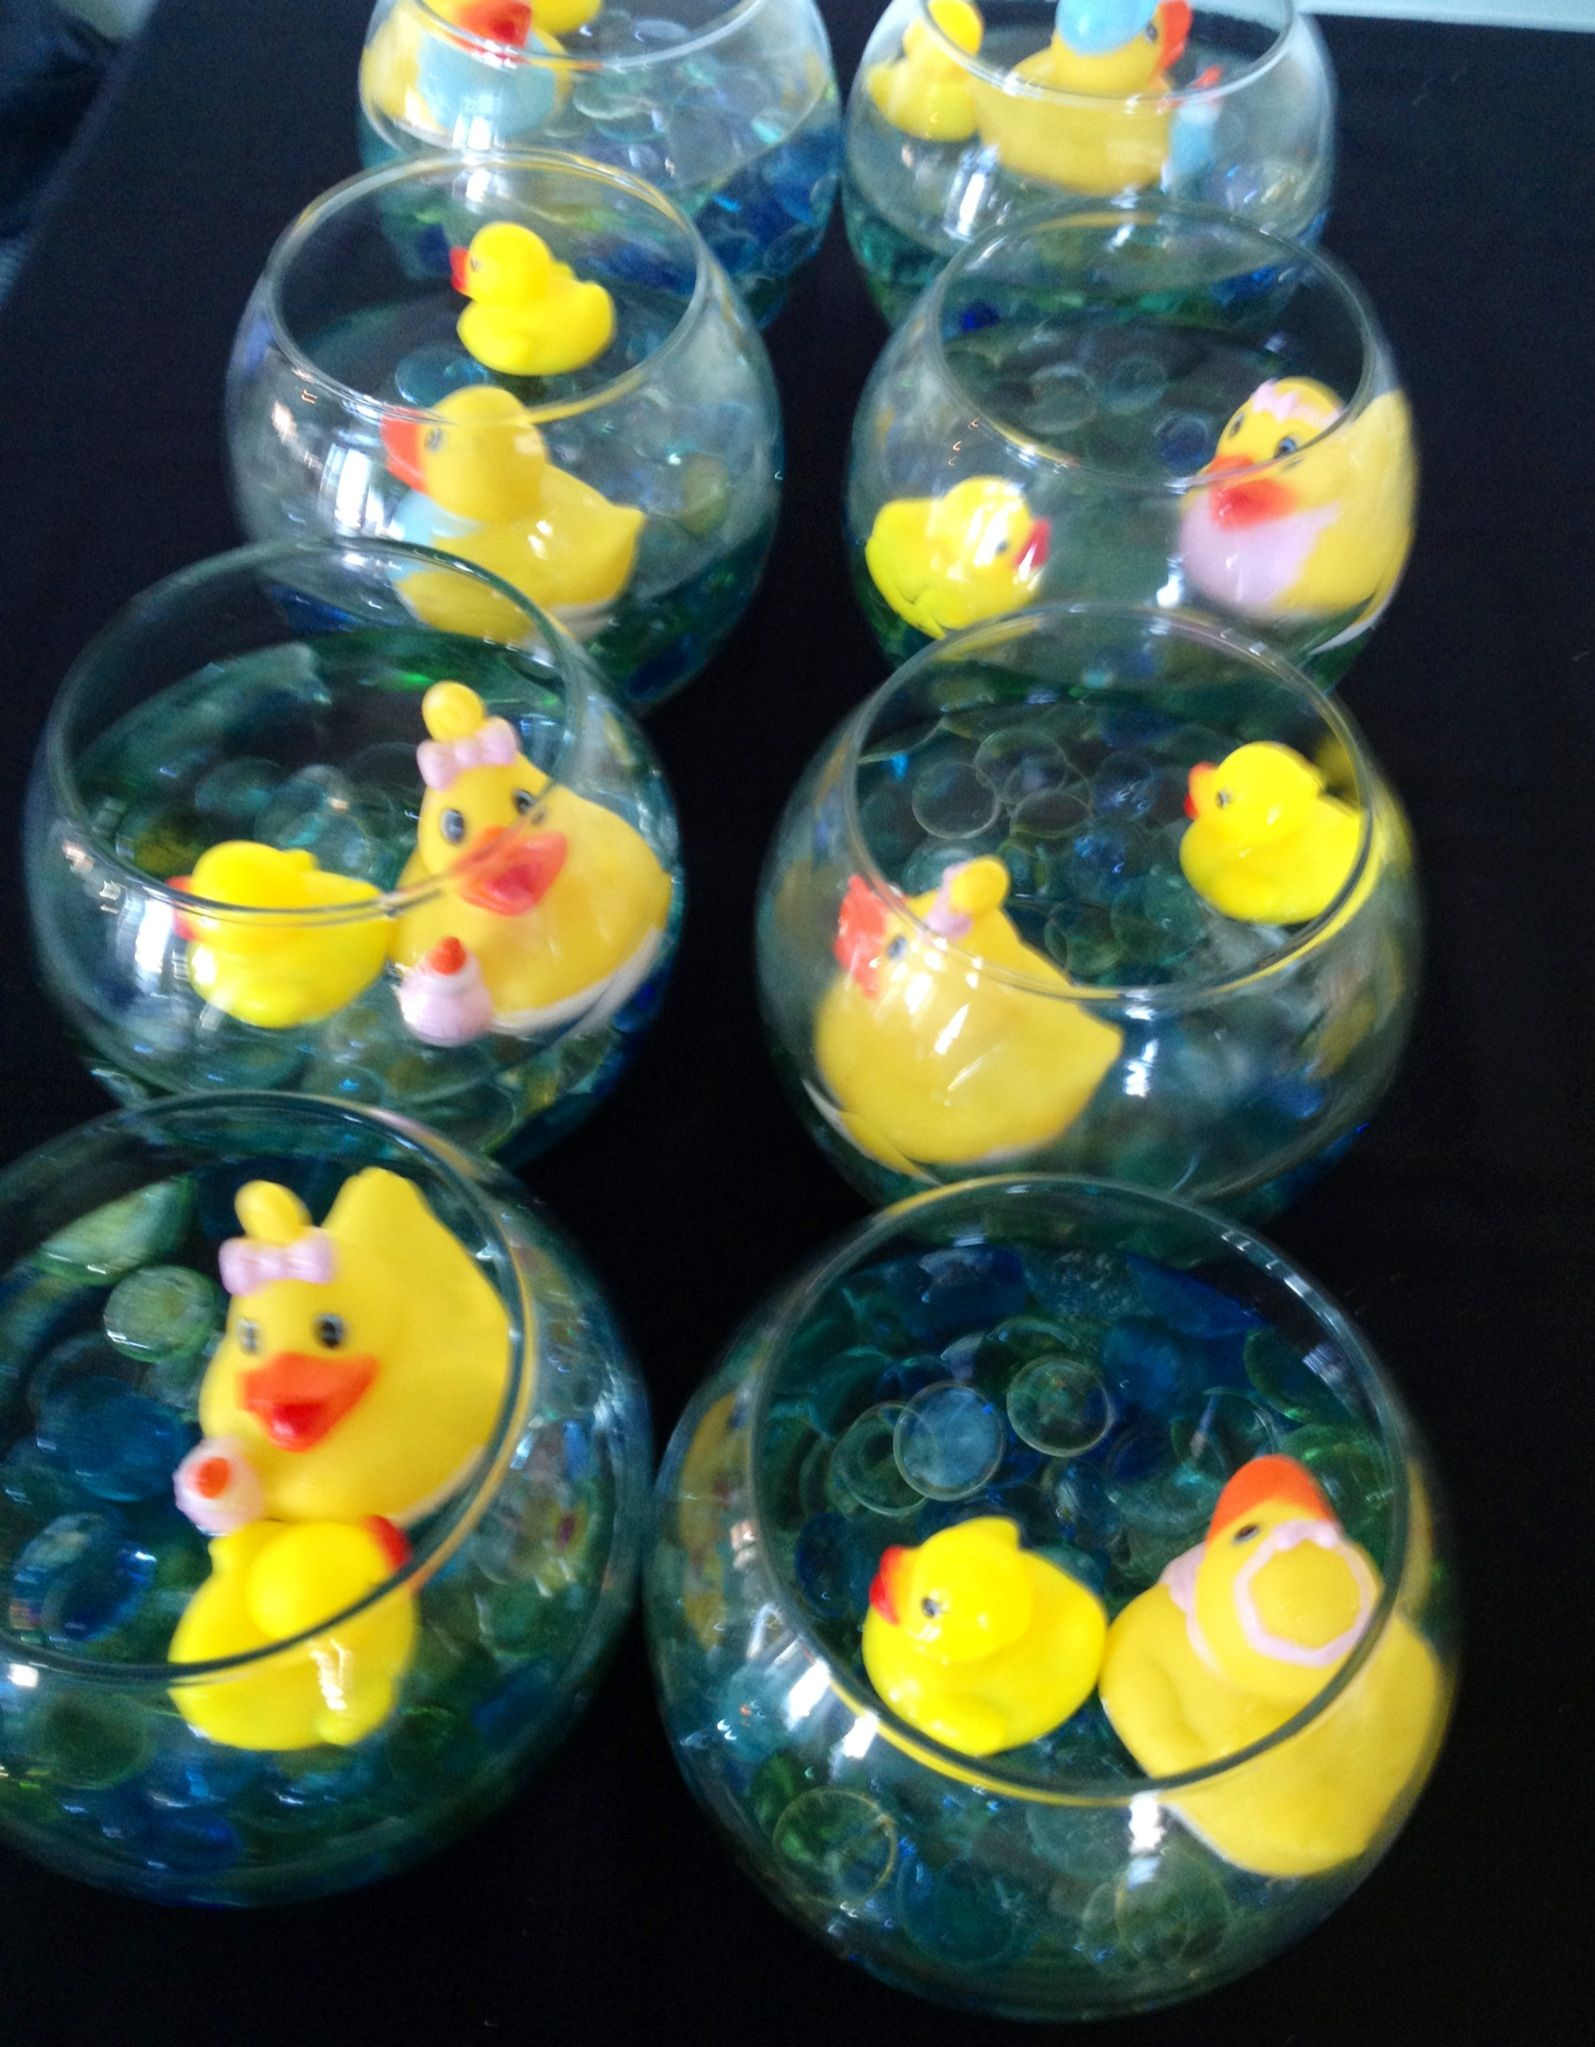 Superior Table Decor! Mancala Beads, Water, And Rubber Ducks In A Glass Bowl